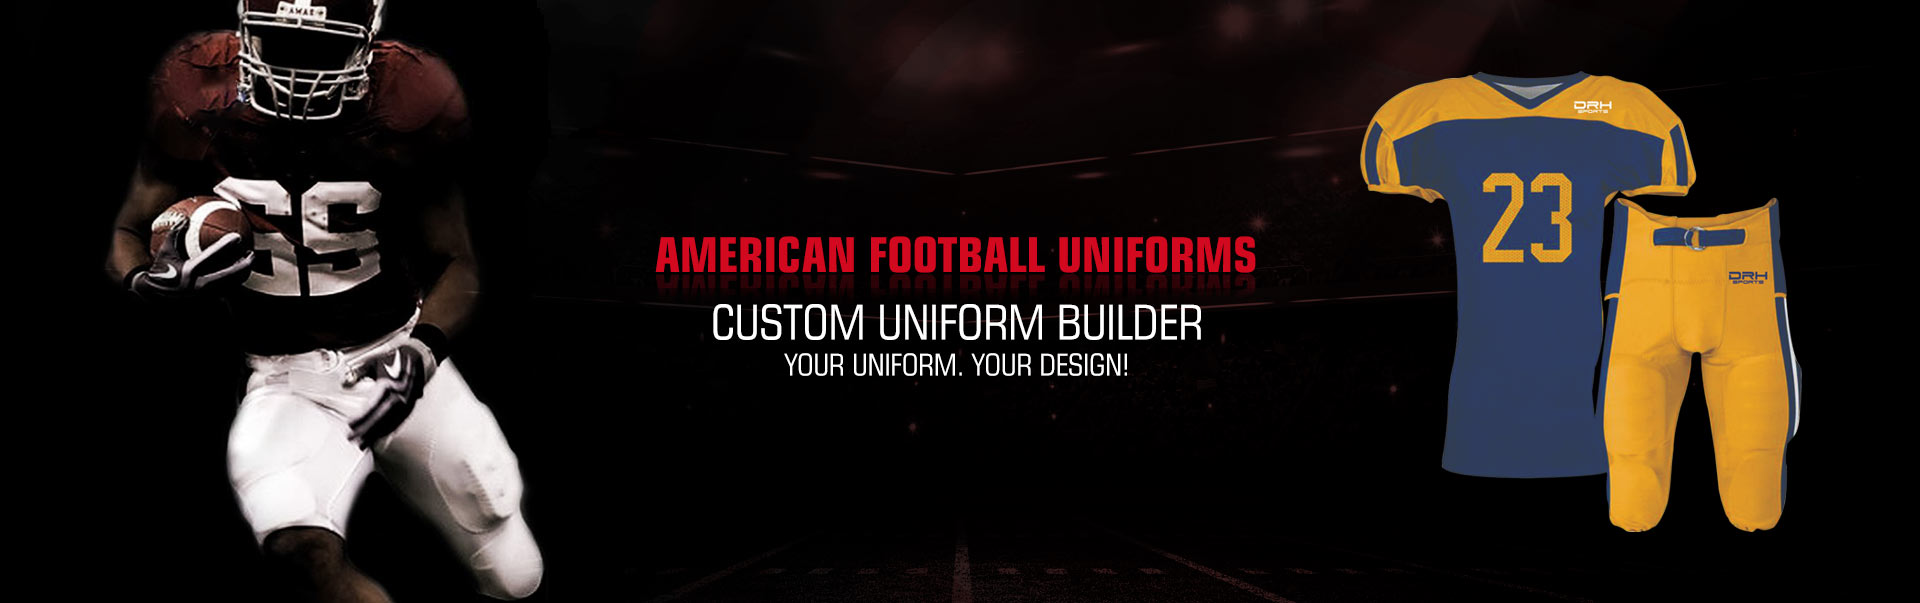 American Football Uniform Wholesaler, Suppliers in Obninsk